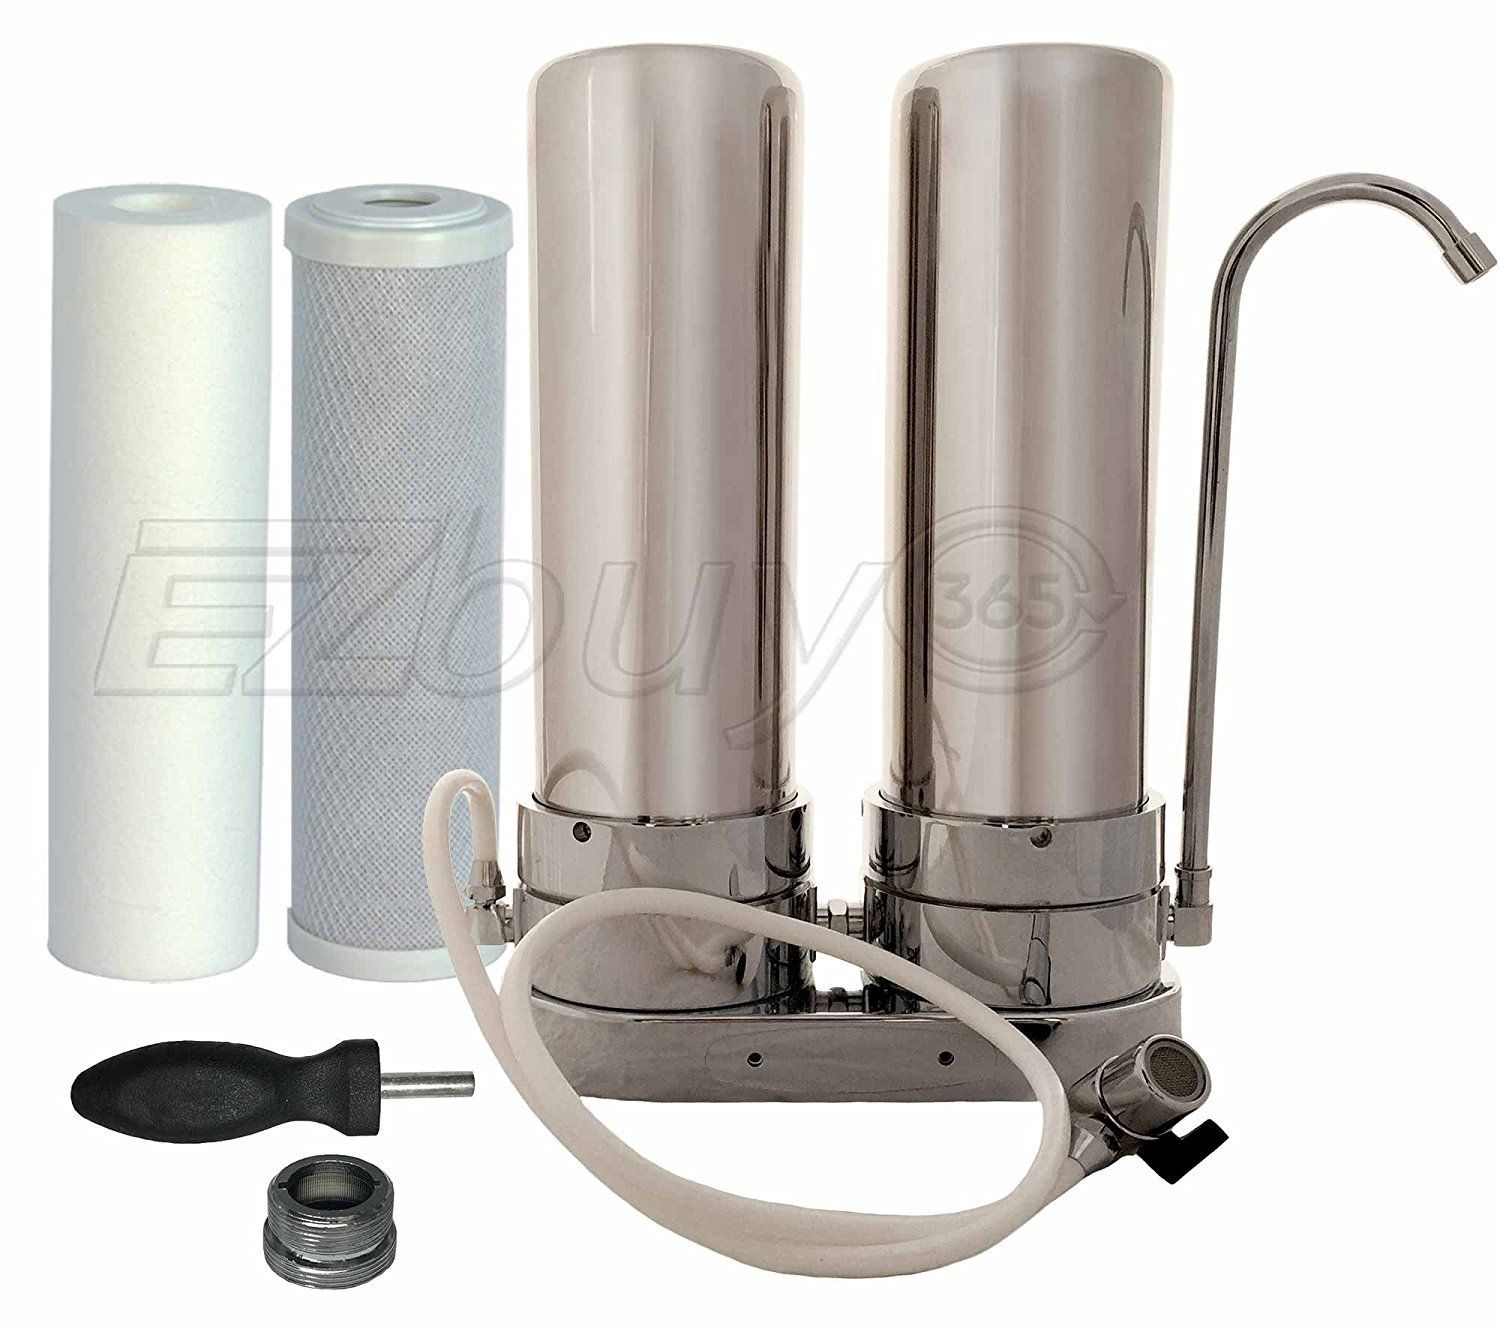 Dual Countertop Water Filter System Stainless Steel With Carbon